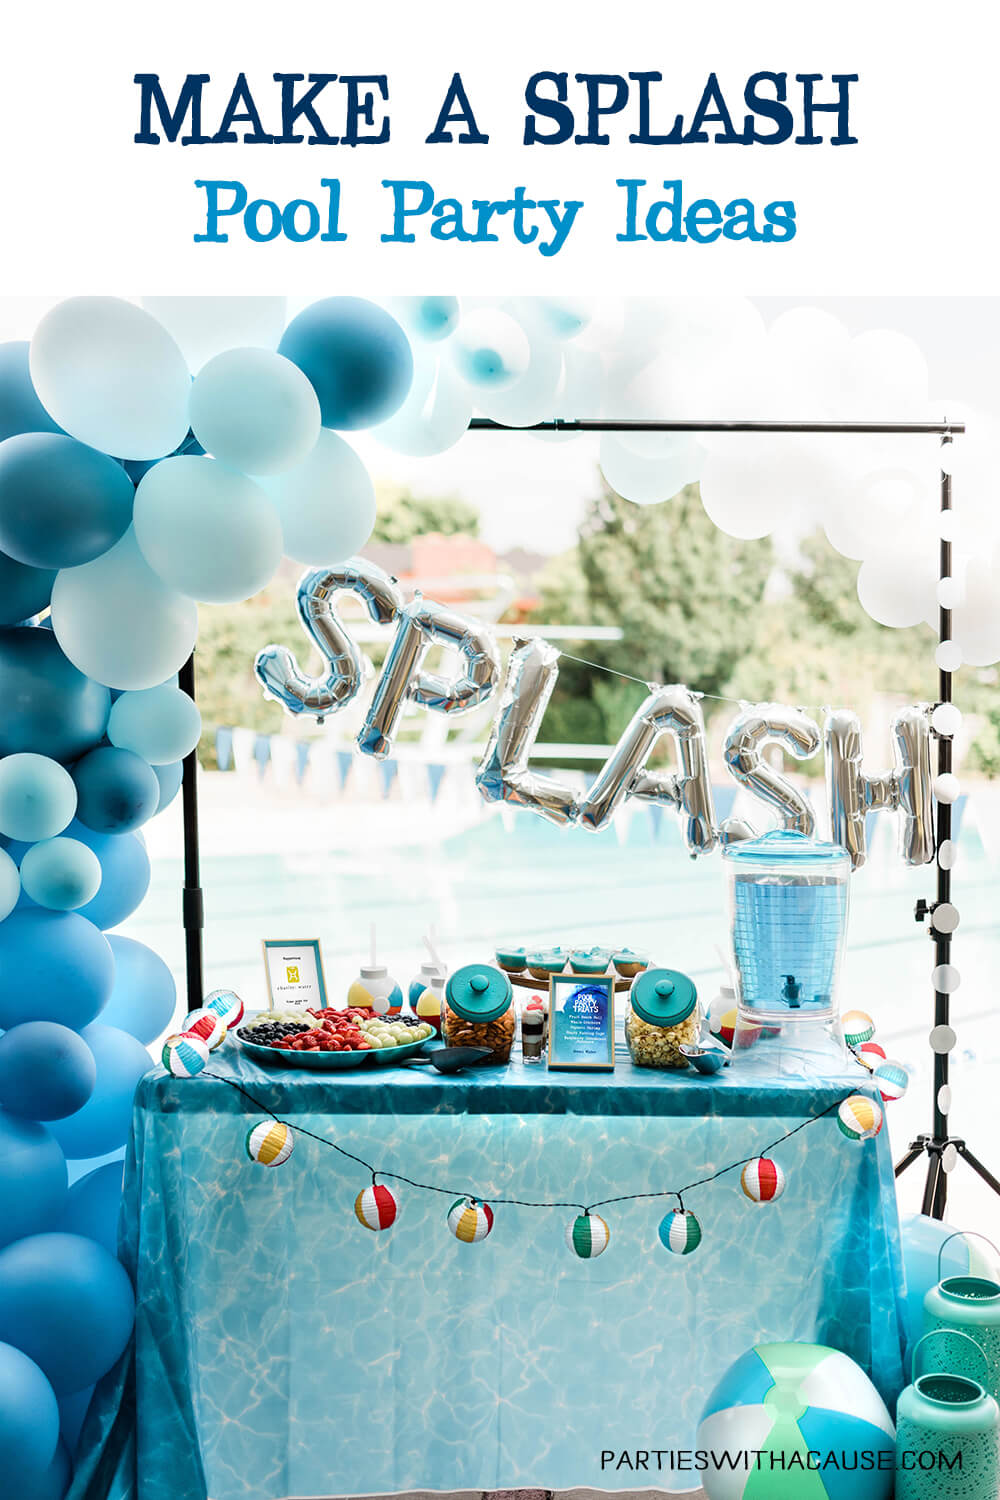 Make a splash pool party